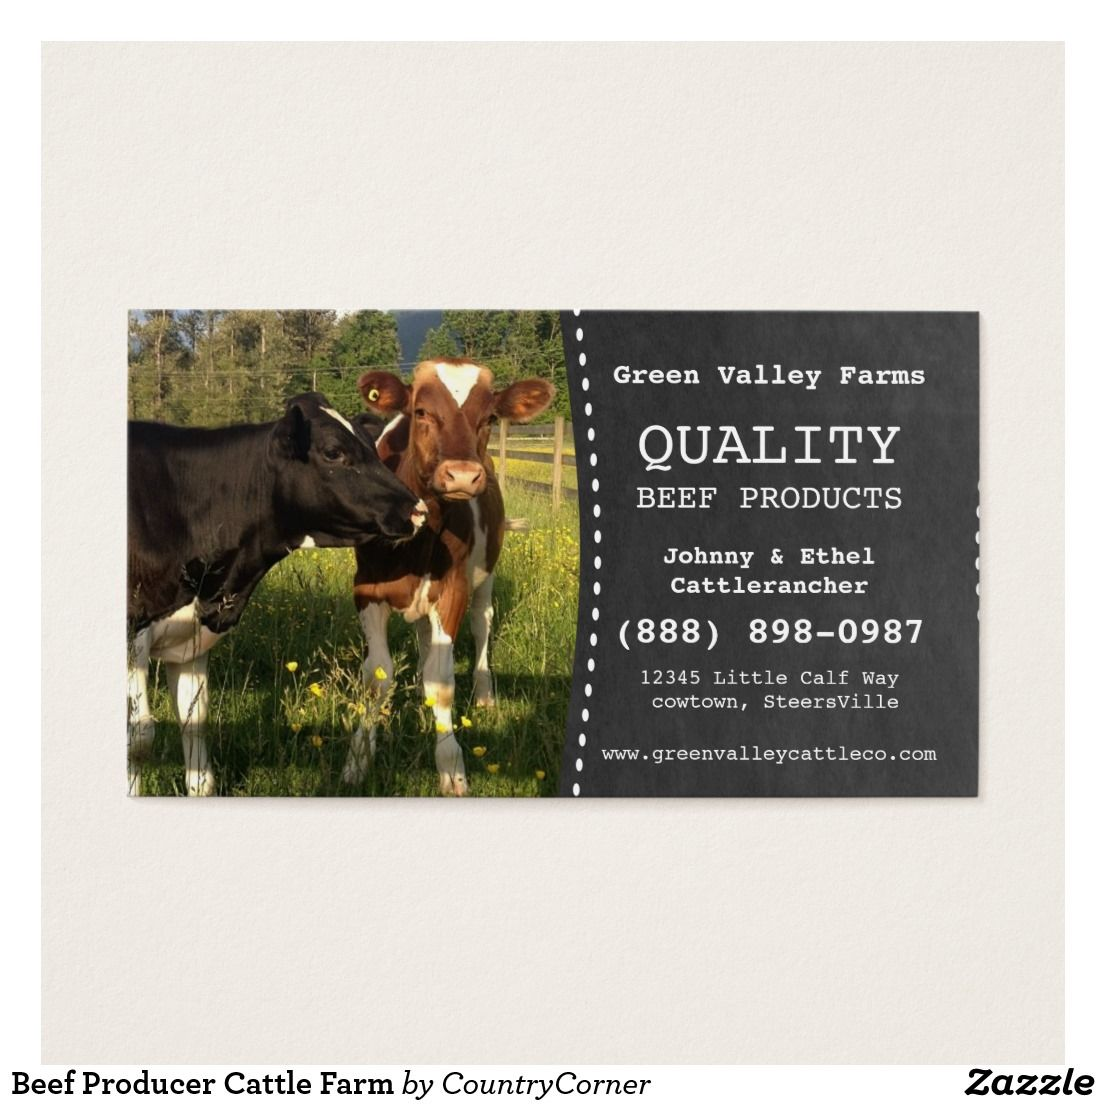 Beef Producer Cattle Farm Business Card | Business cards and Business